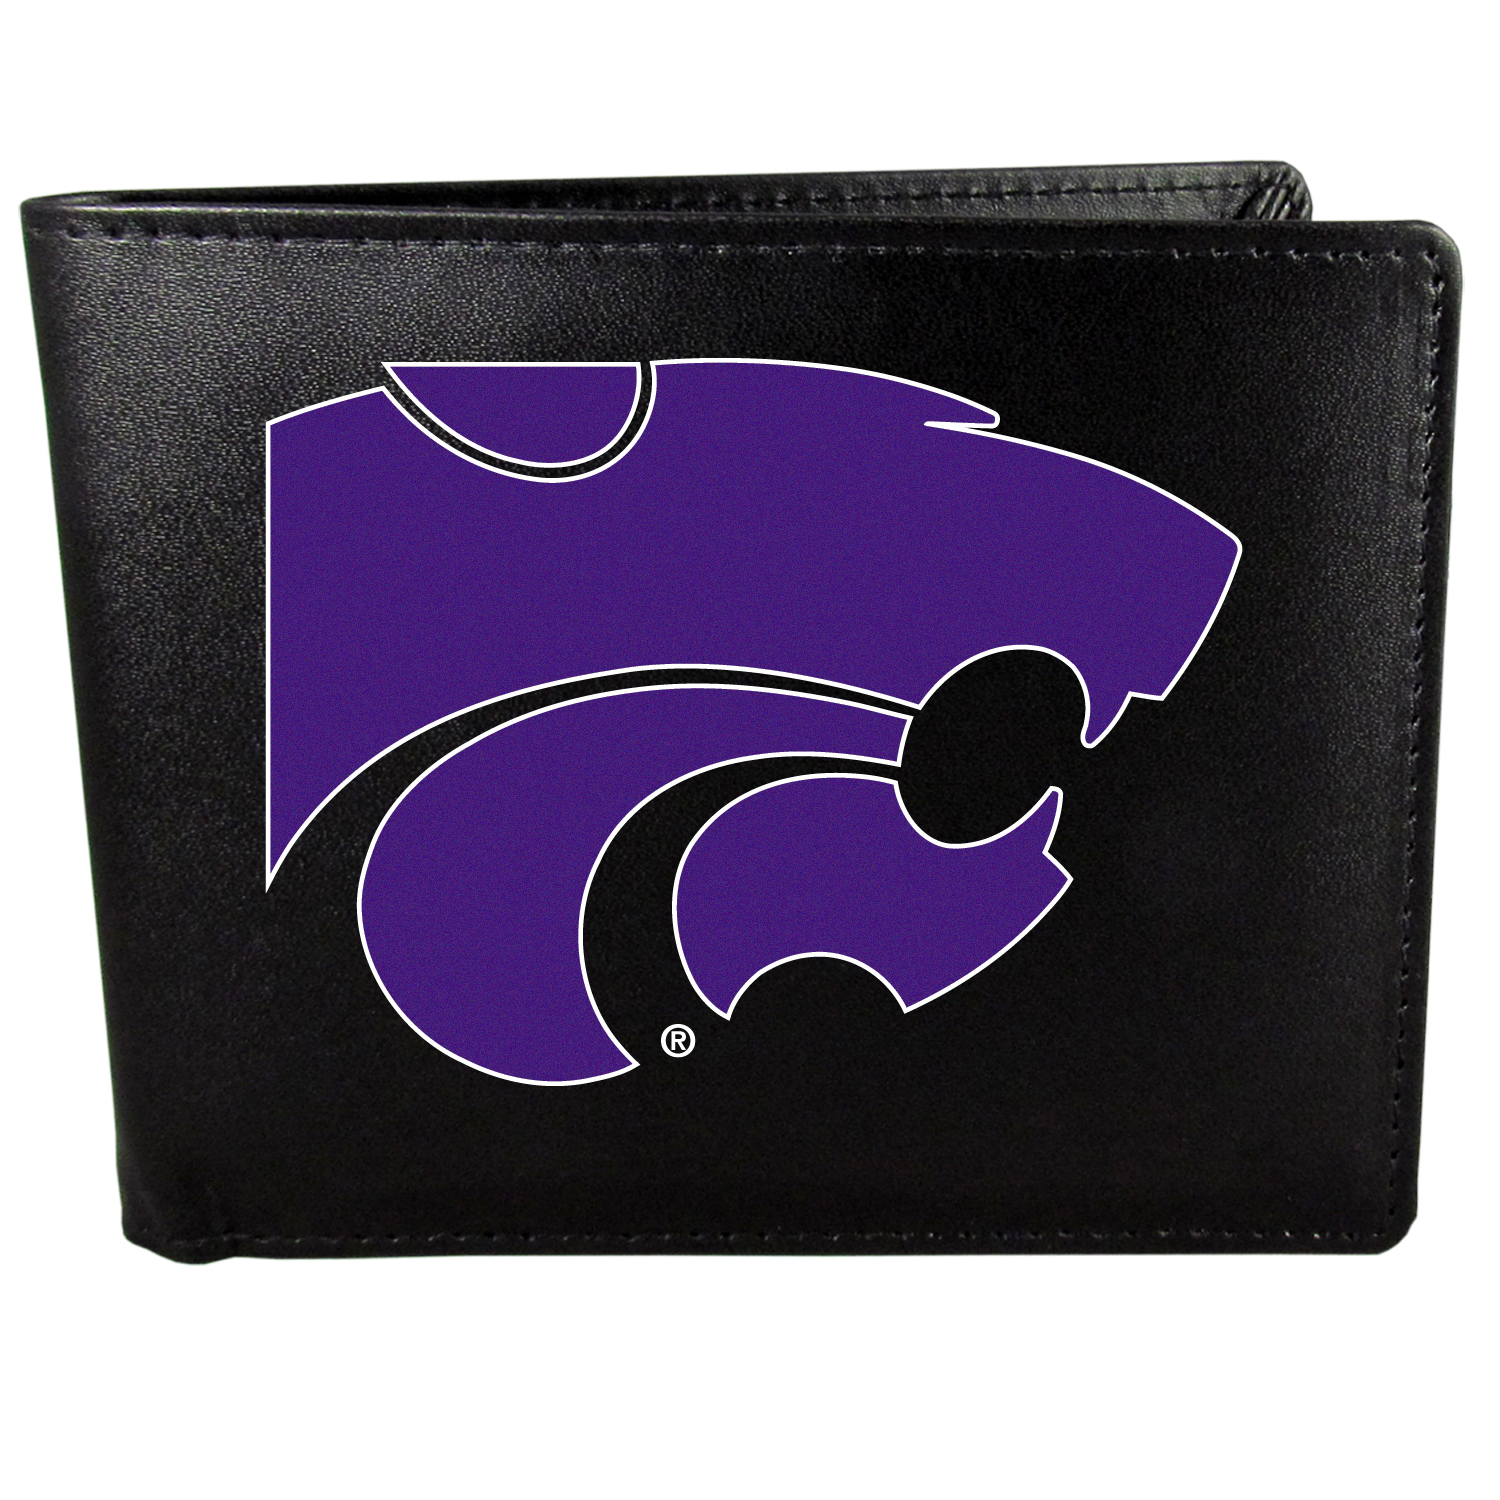 Kansas St. Wildcats Bi-fold Wallet Large Logo - Sports fans do not have to sacrifice style with this classic bi-fold wallet that sports the Kansas St. Wildcats extra large logo. This men's fashion accessory has a leather grain look and expert craftmanship for a quality wallet at a great price. The wallet features inner credit card slots, windowed ID slot and a large billfold pocket. The front of the wallet features a printed team logo.